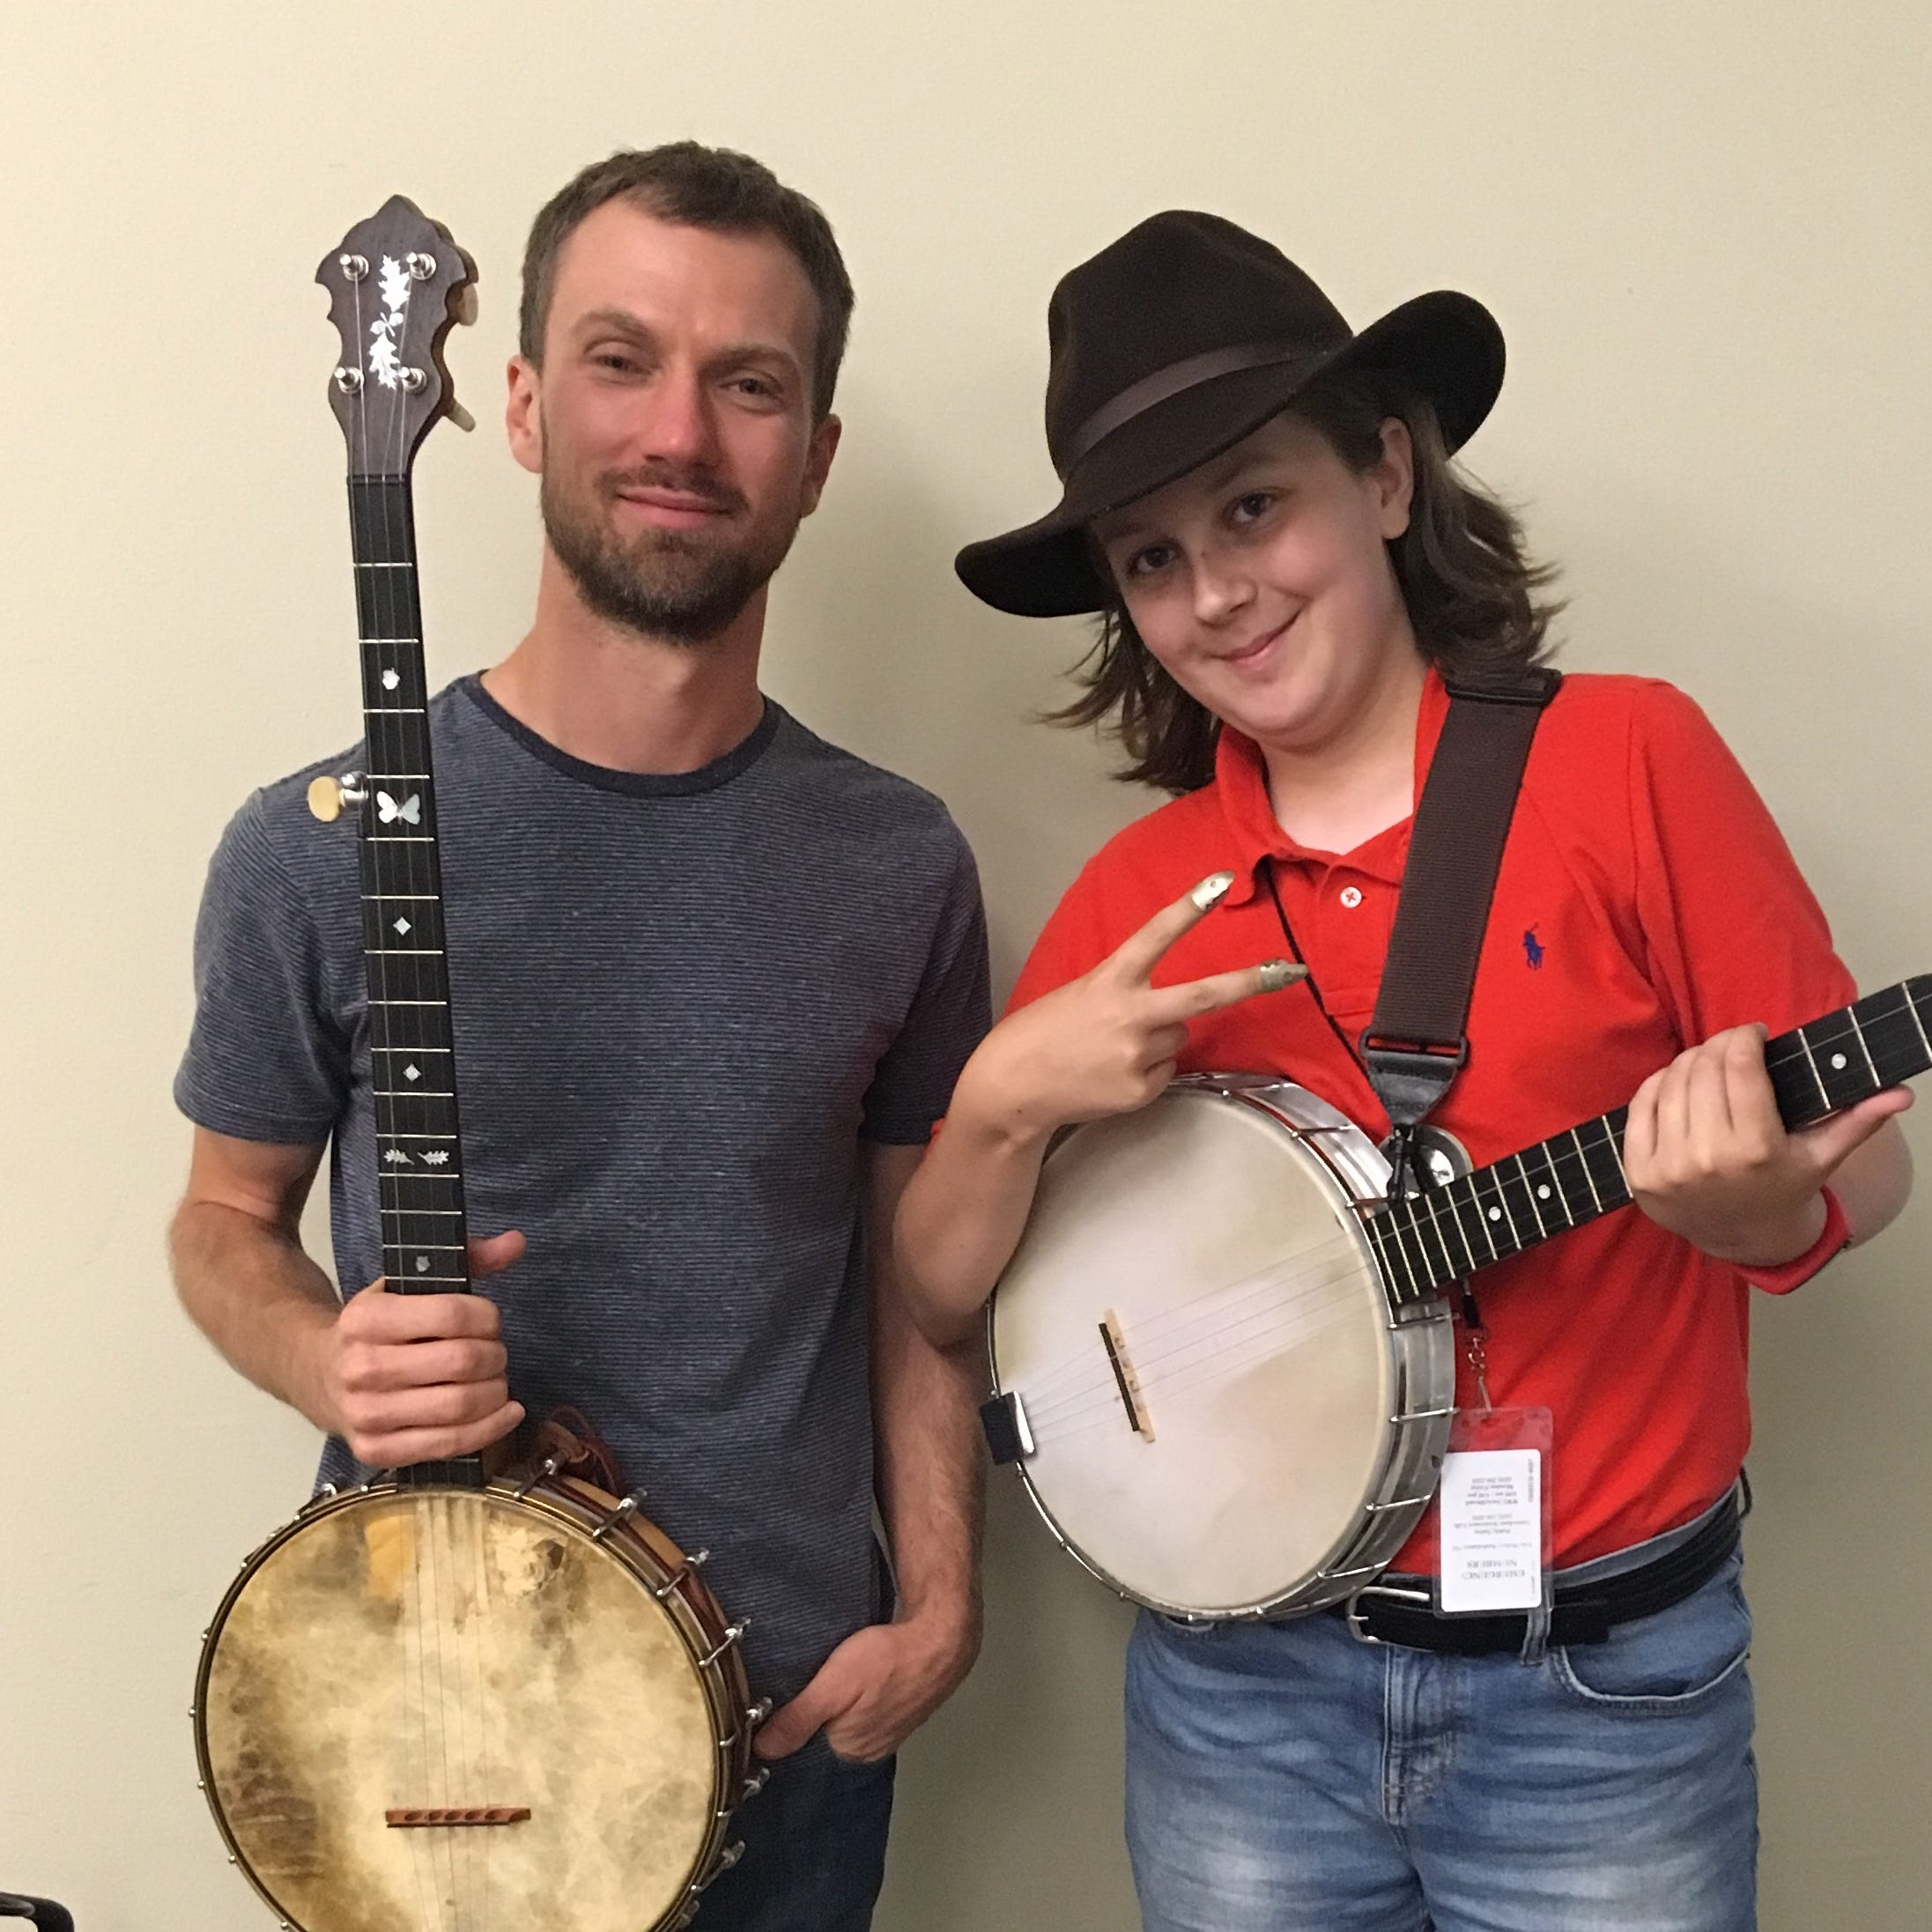 Junior Appalachian Musicians program at BMCA offers musical opportunities